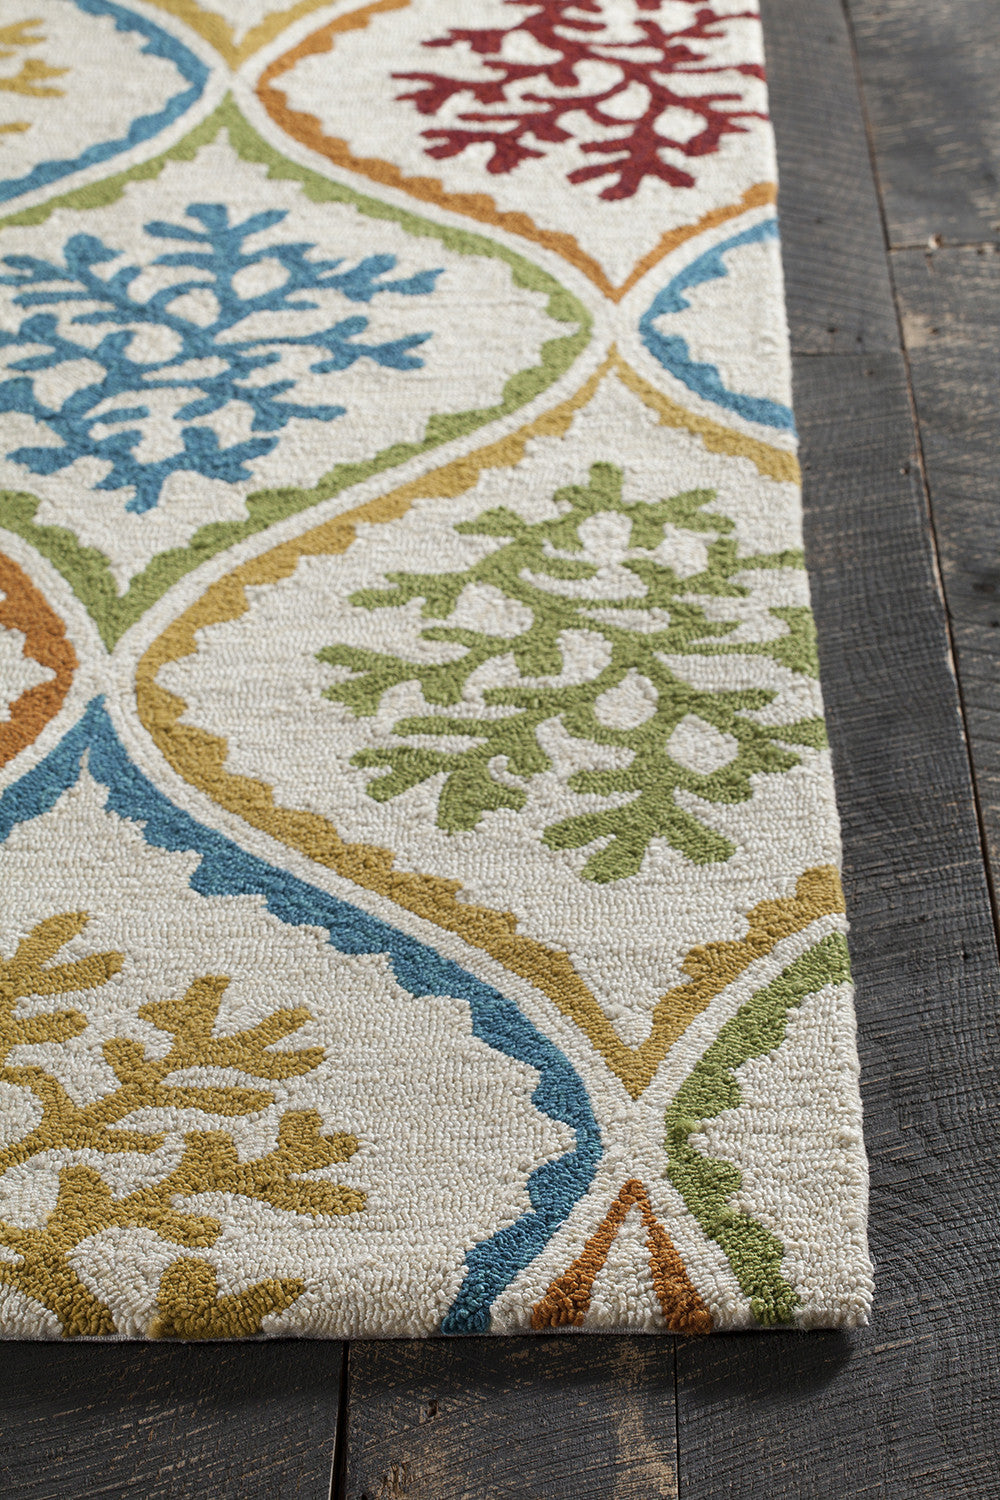 Marvelous Terra Collection Hand Tufted Area Rug In Cream, Blue, Green, U0026 Red Design  By Chandra Rugs